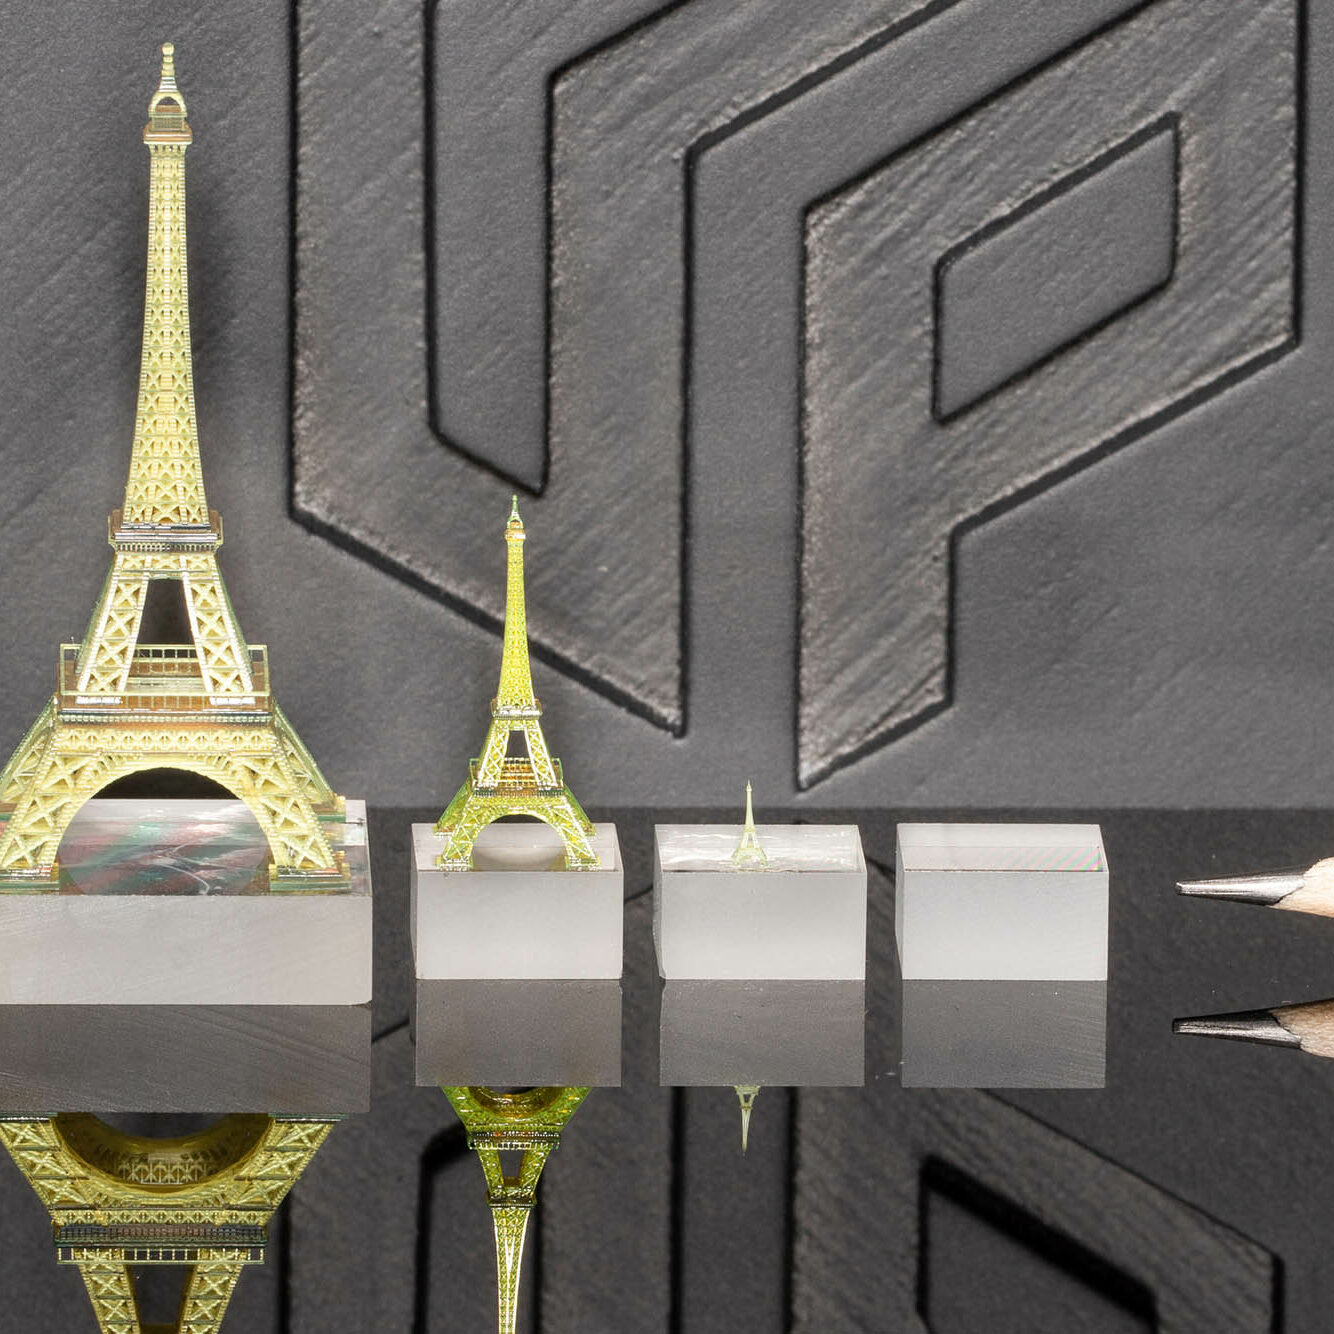 Photo: miniature models of Eiffel Tower in three sizes